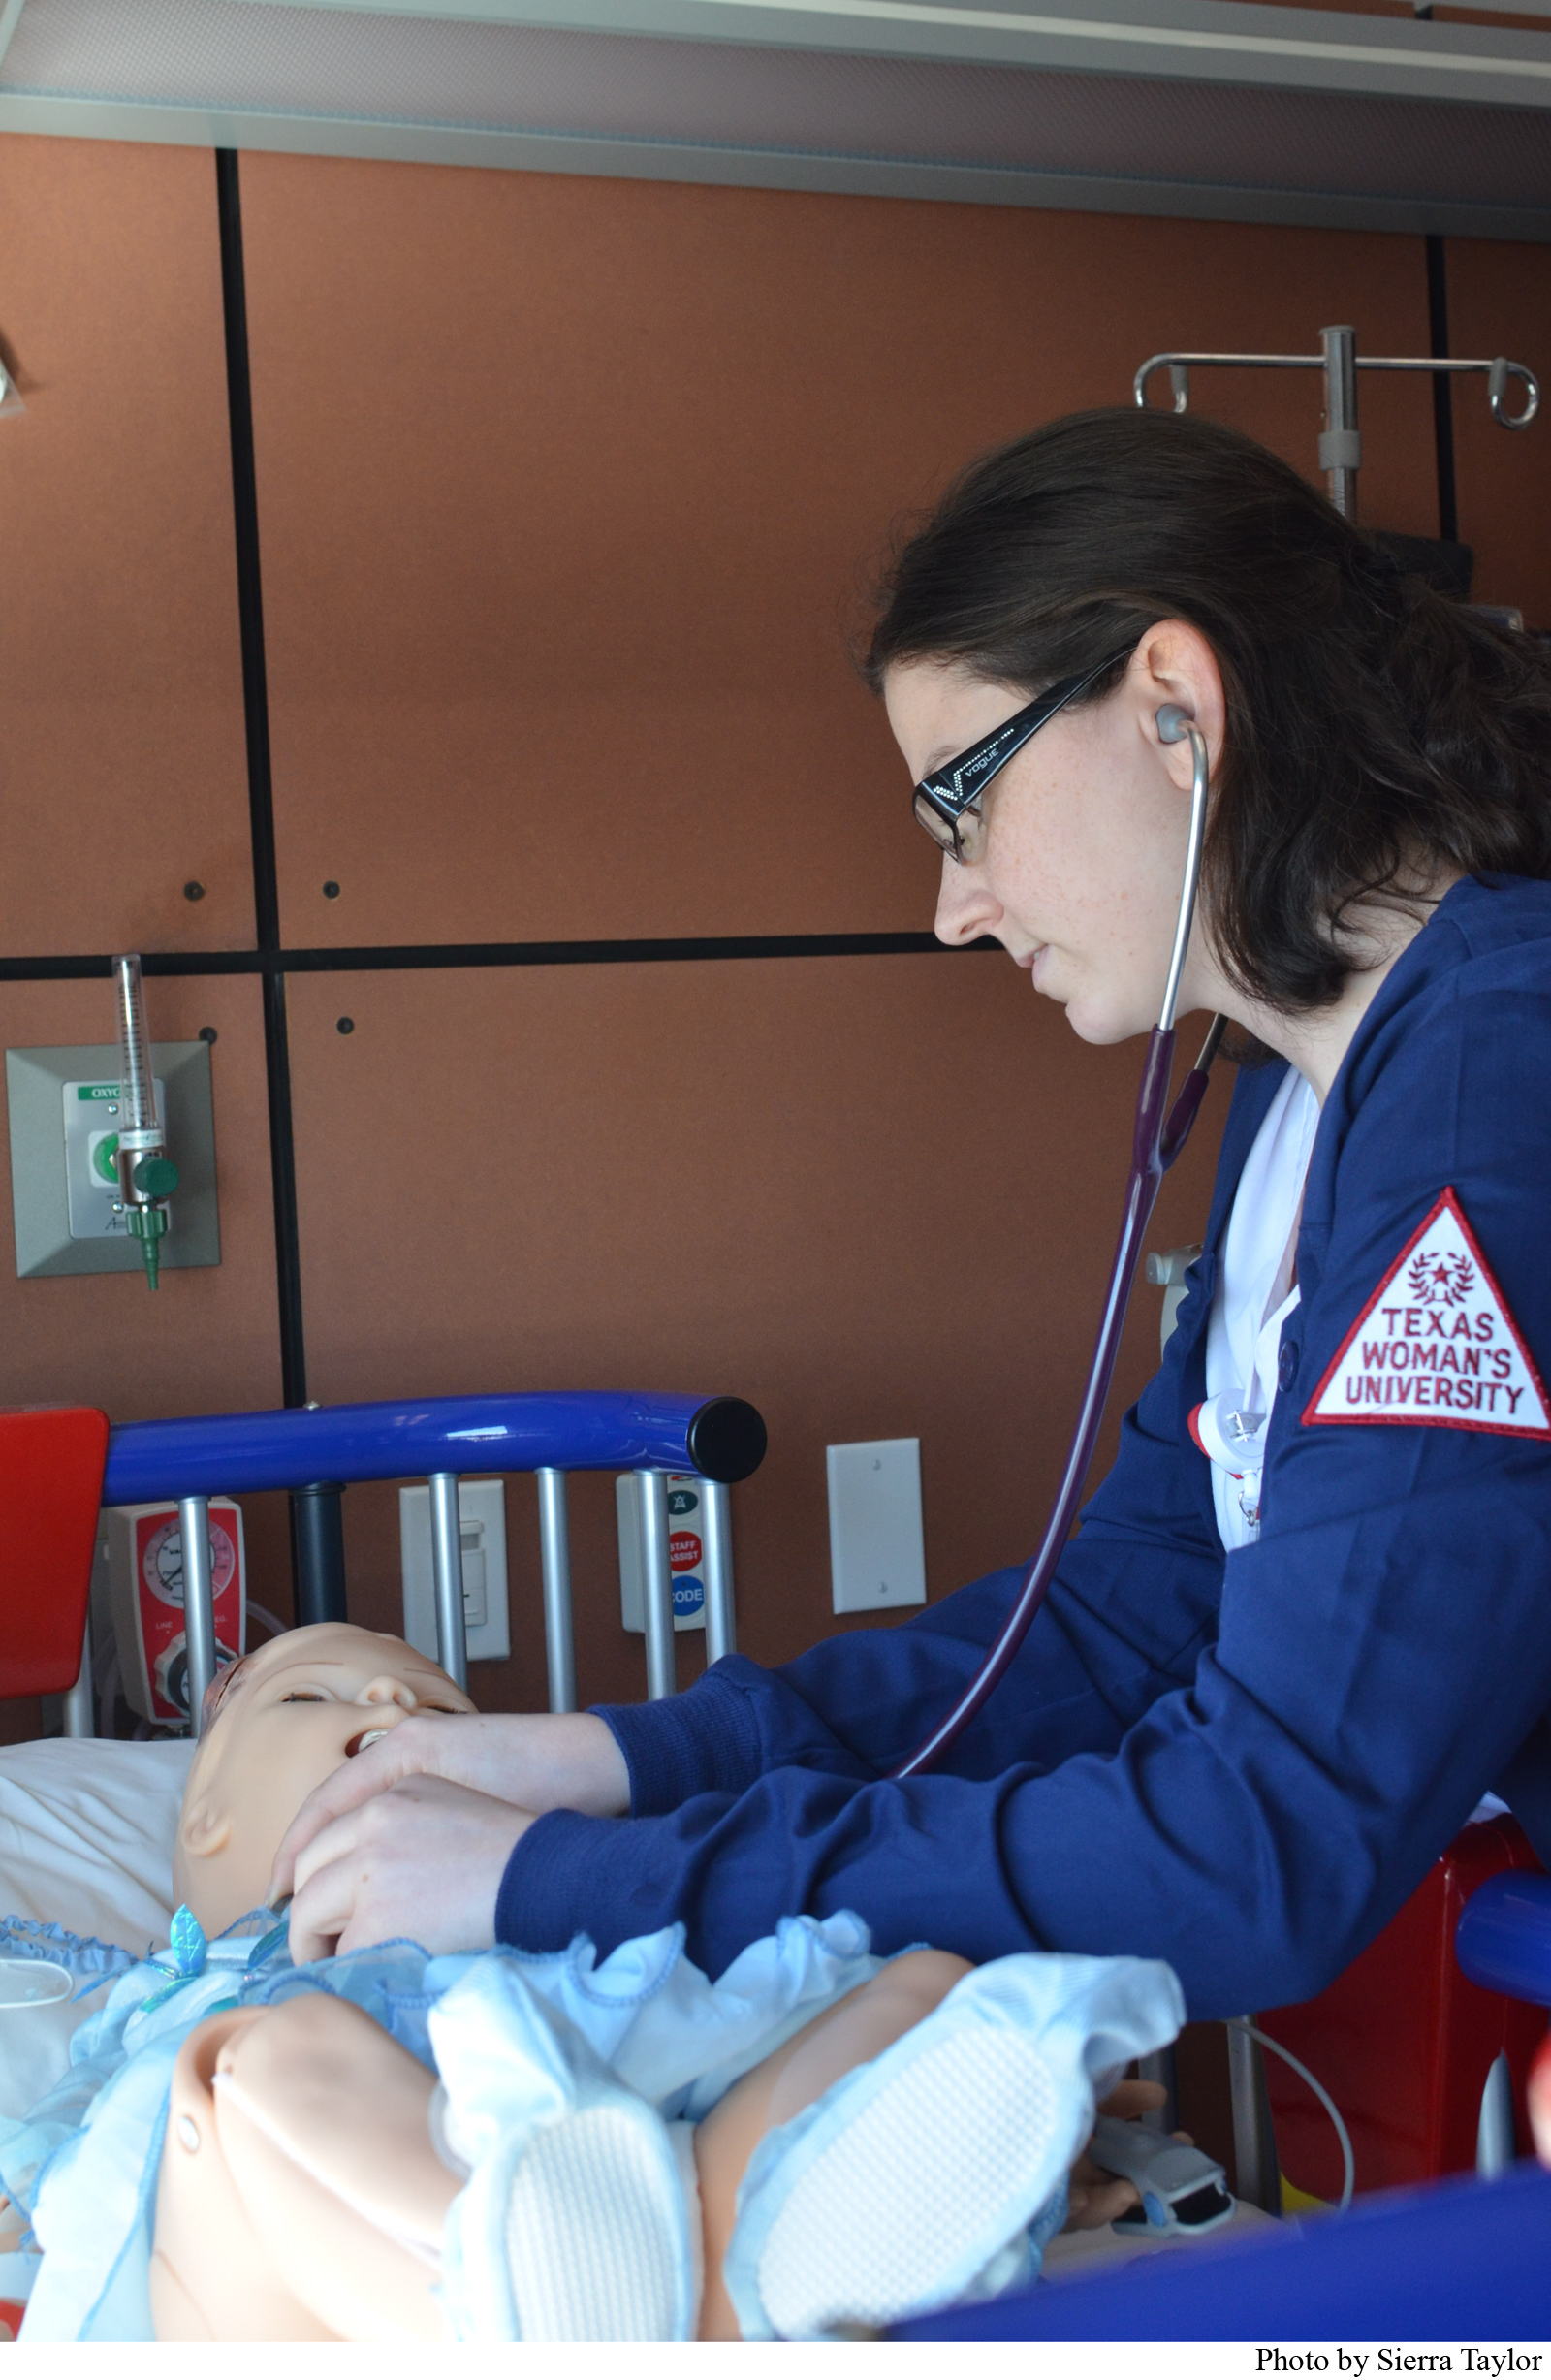 TWU Nursing student Moriah Grossmann assesses a simulation mannequin in the pediatric unit of the high fidelity lab.